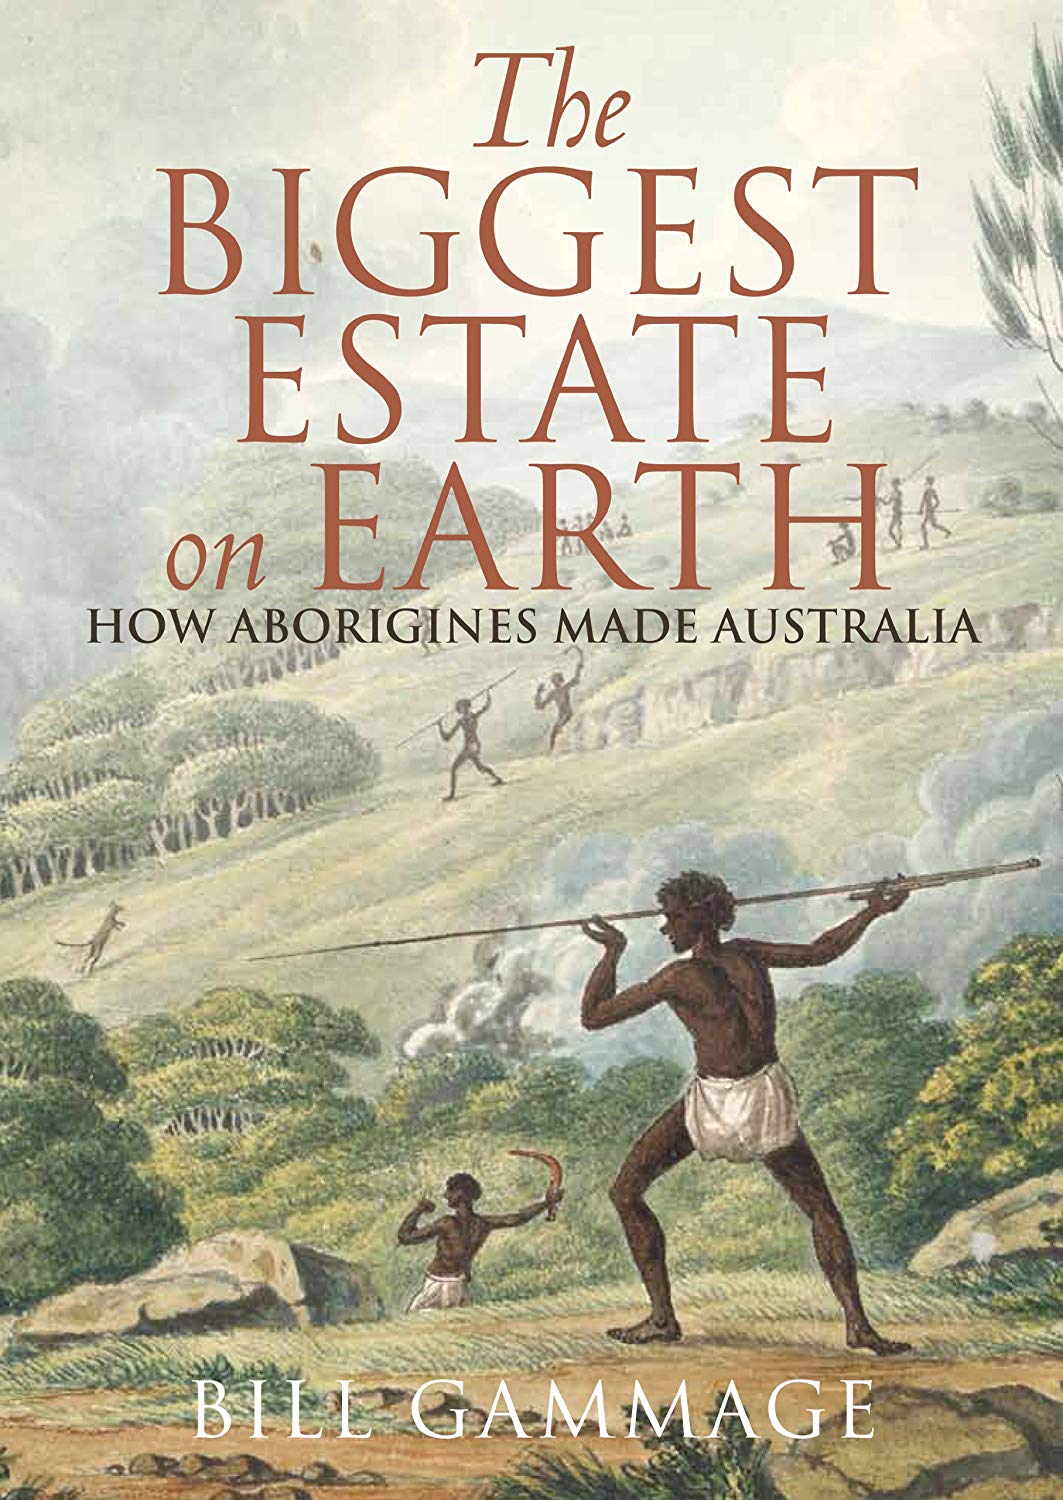 The Biggest Estate on Earth – How Aborigines made Australi    a, Bill Gammage